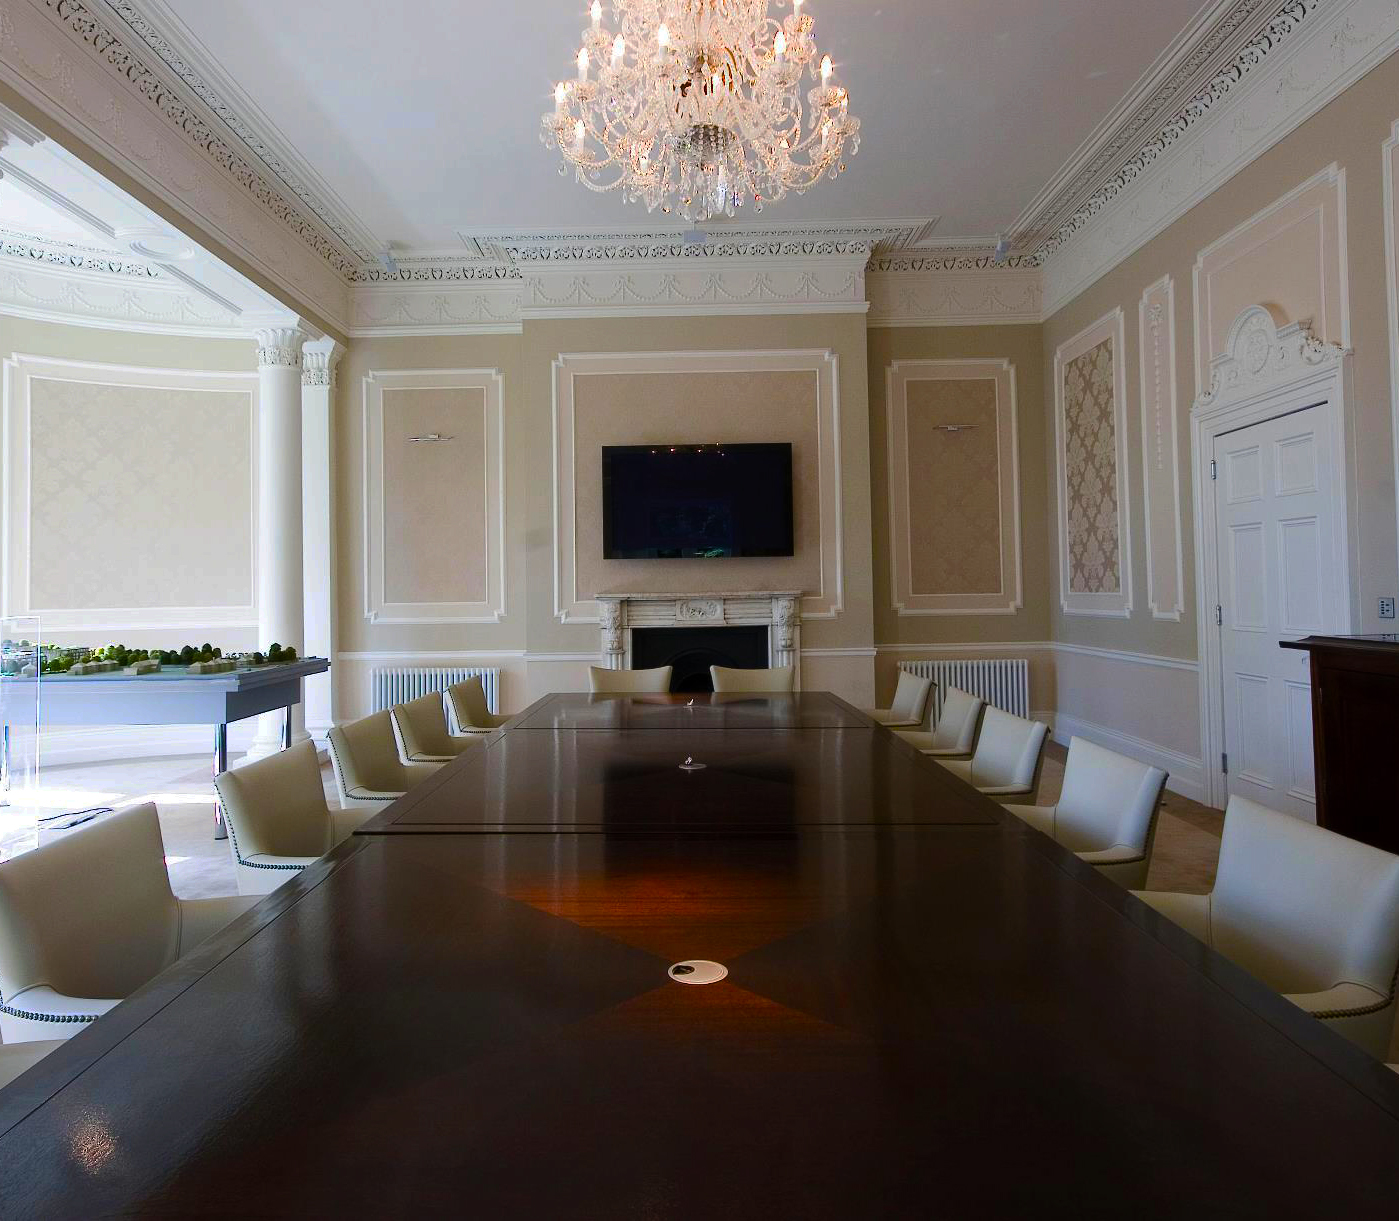 Teamwoodcraft design and build luxury boardrooms